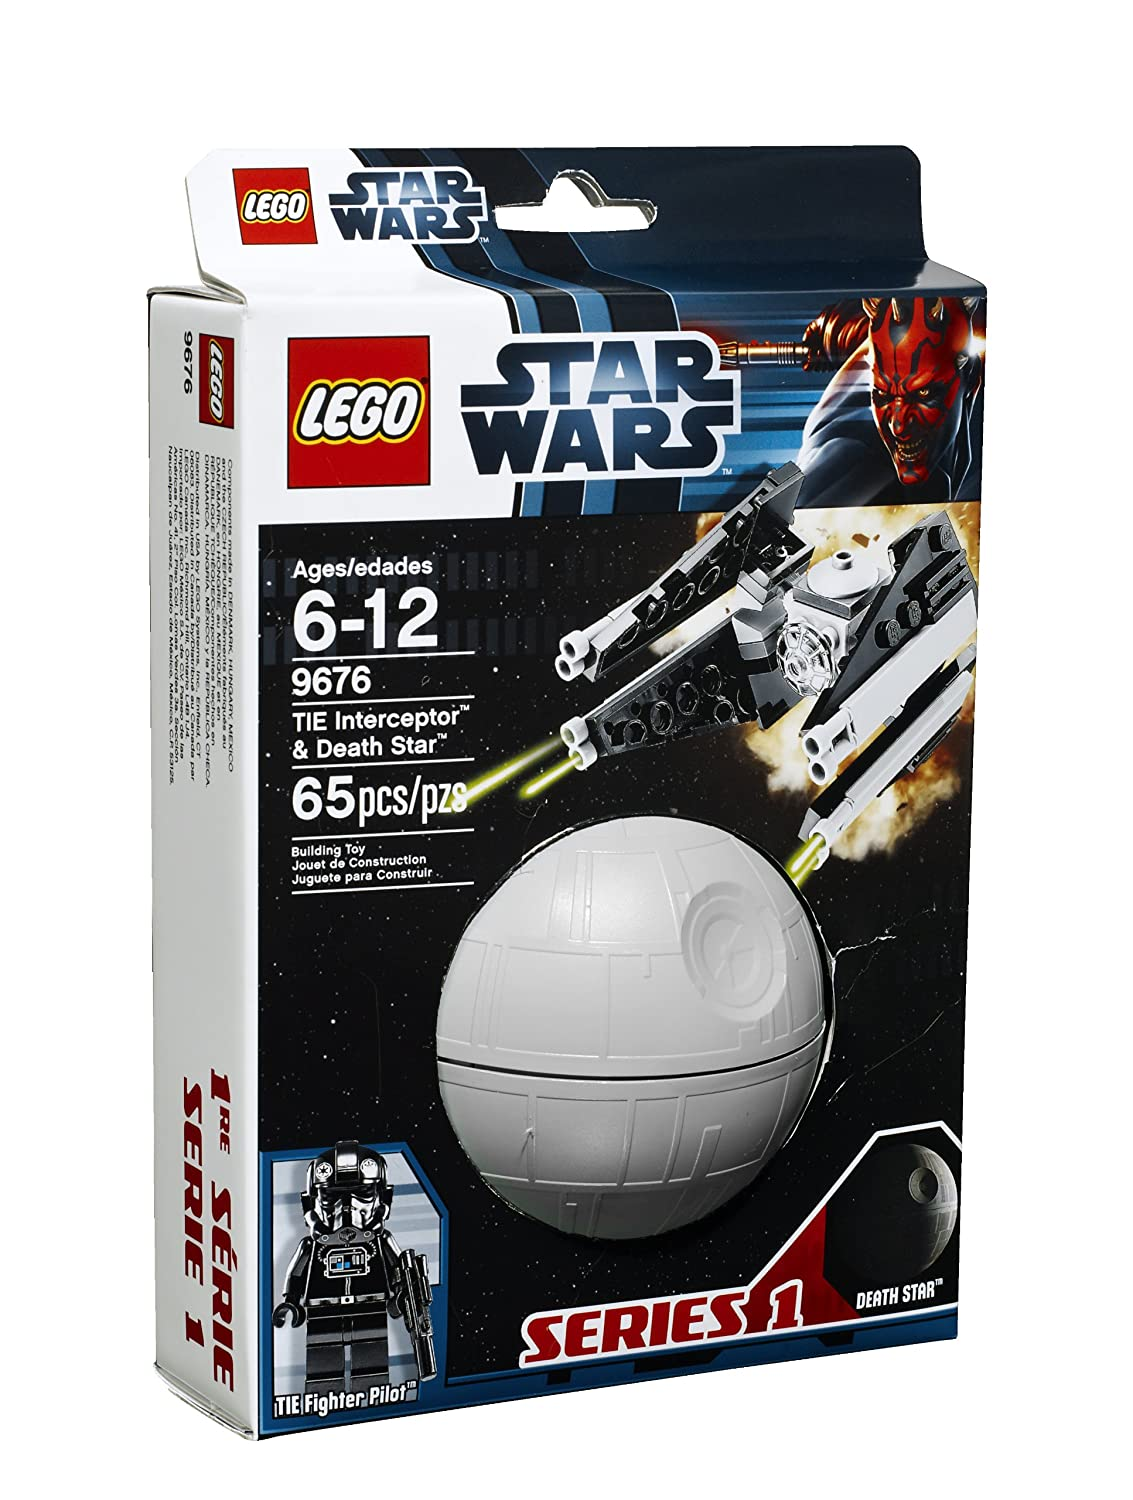 Top 5 Best LEGO Death Star Sets Reviews in 2019 4